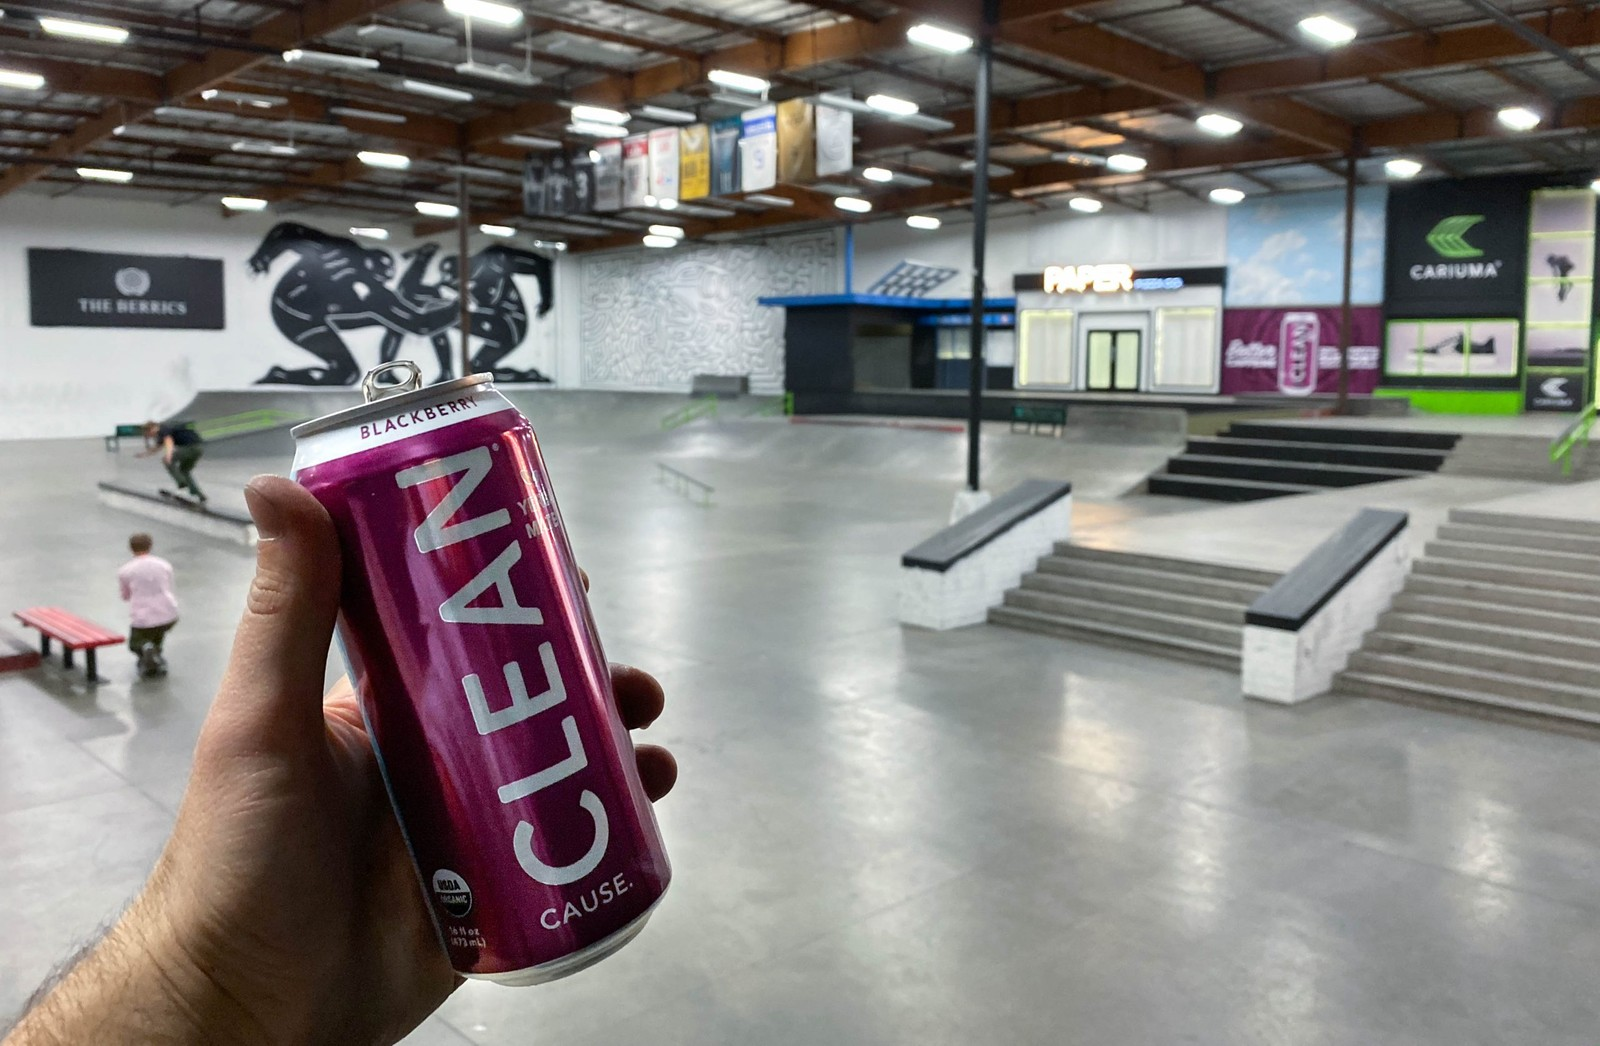 The Berrics And Clean Cause Team Up To Support Alcohol and Drug Addiction Recovery